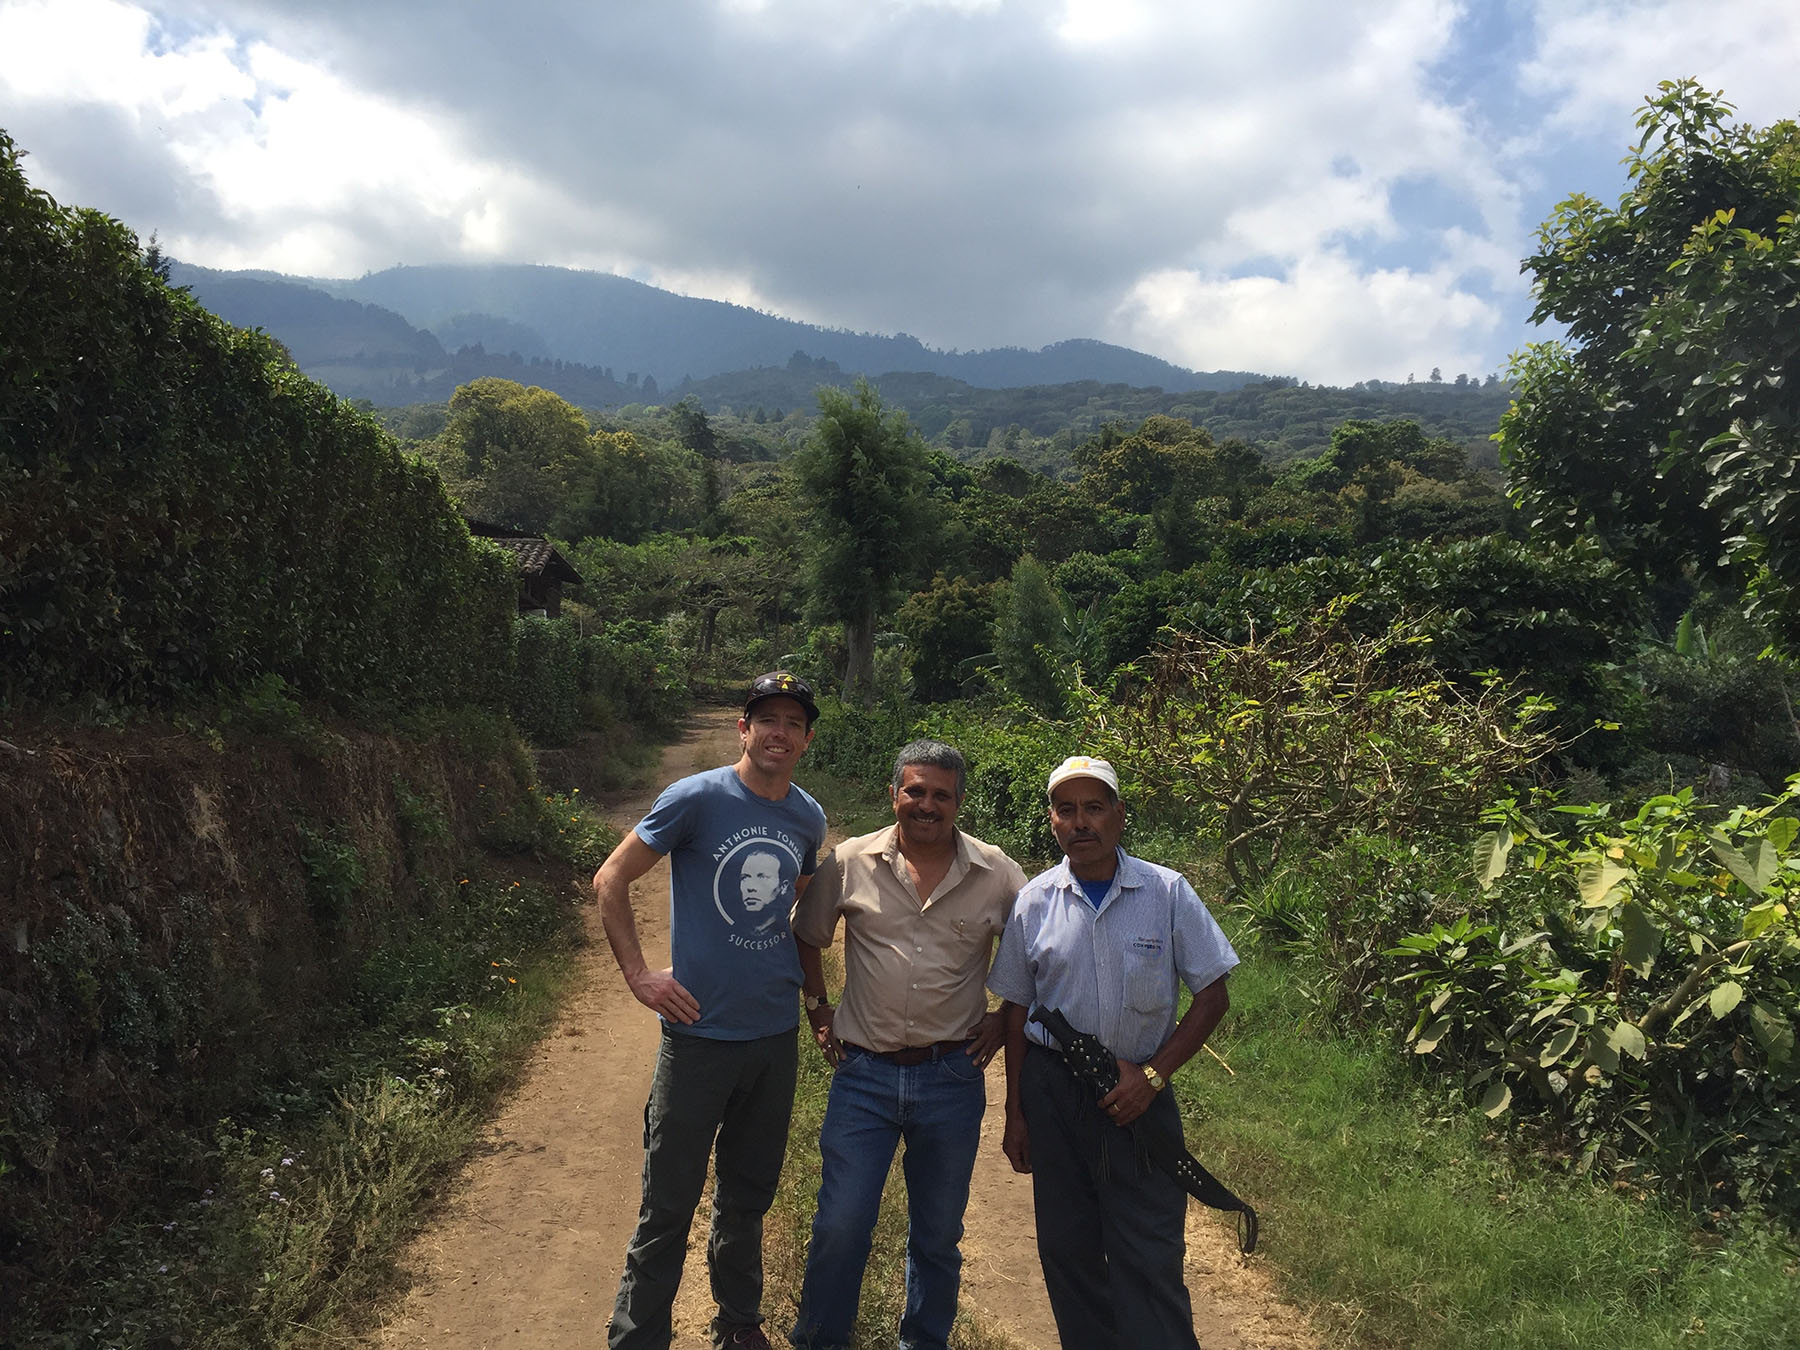 Black Sheep owner Peter Schultz in Central America doing business directly with coffee farmers